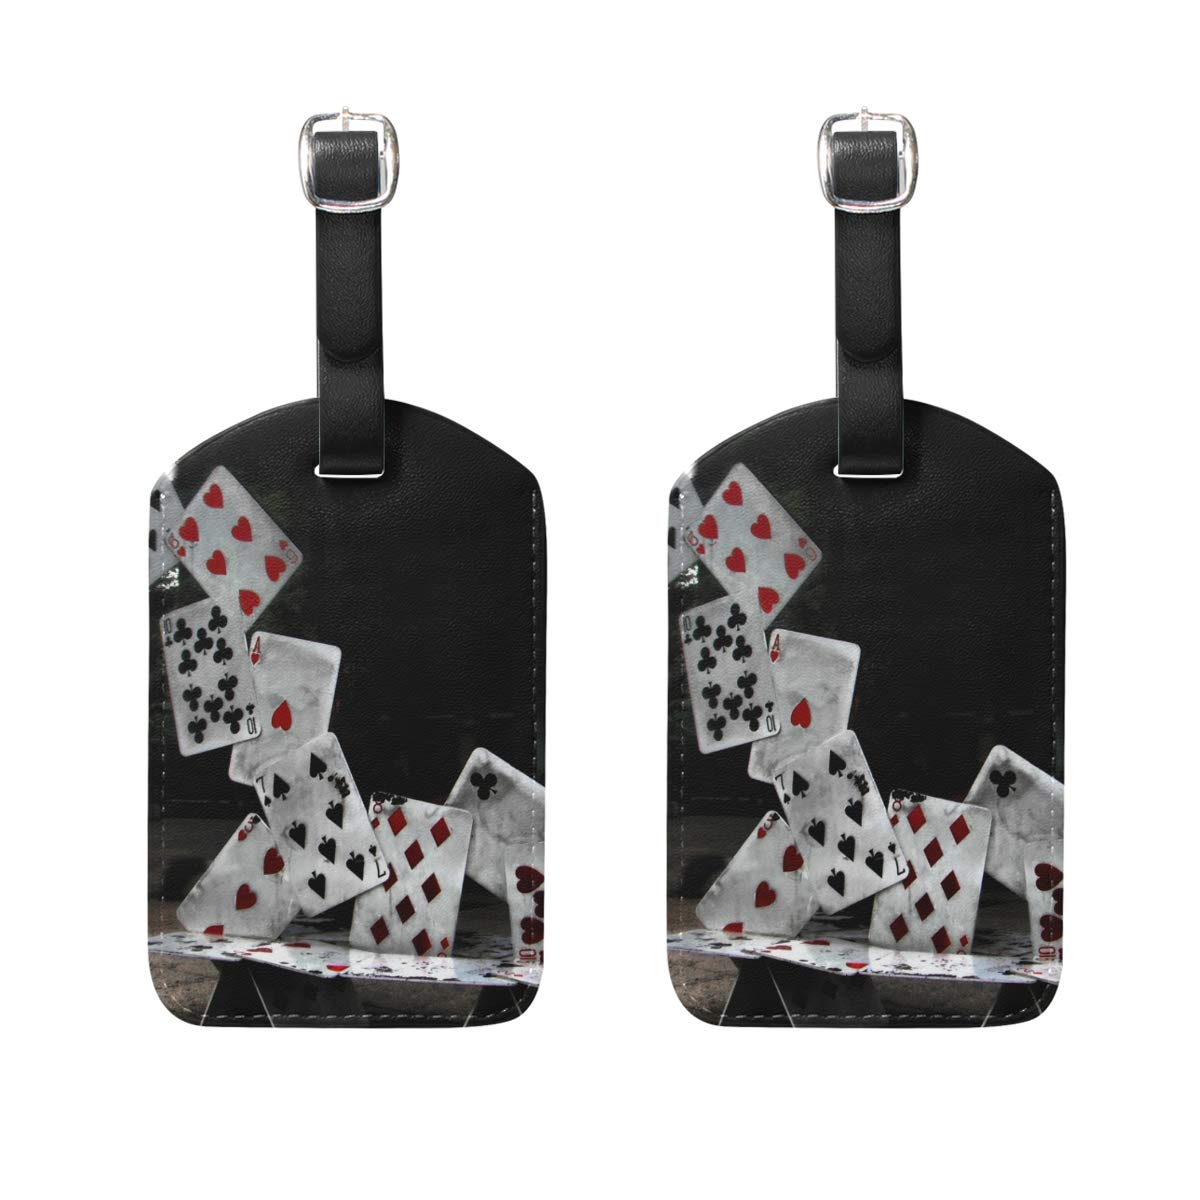 FBTRUST Abstract Castle of Cards Poker Luggage Tag DIY Personalized Print Design (2 Packs)